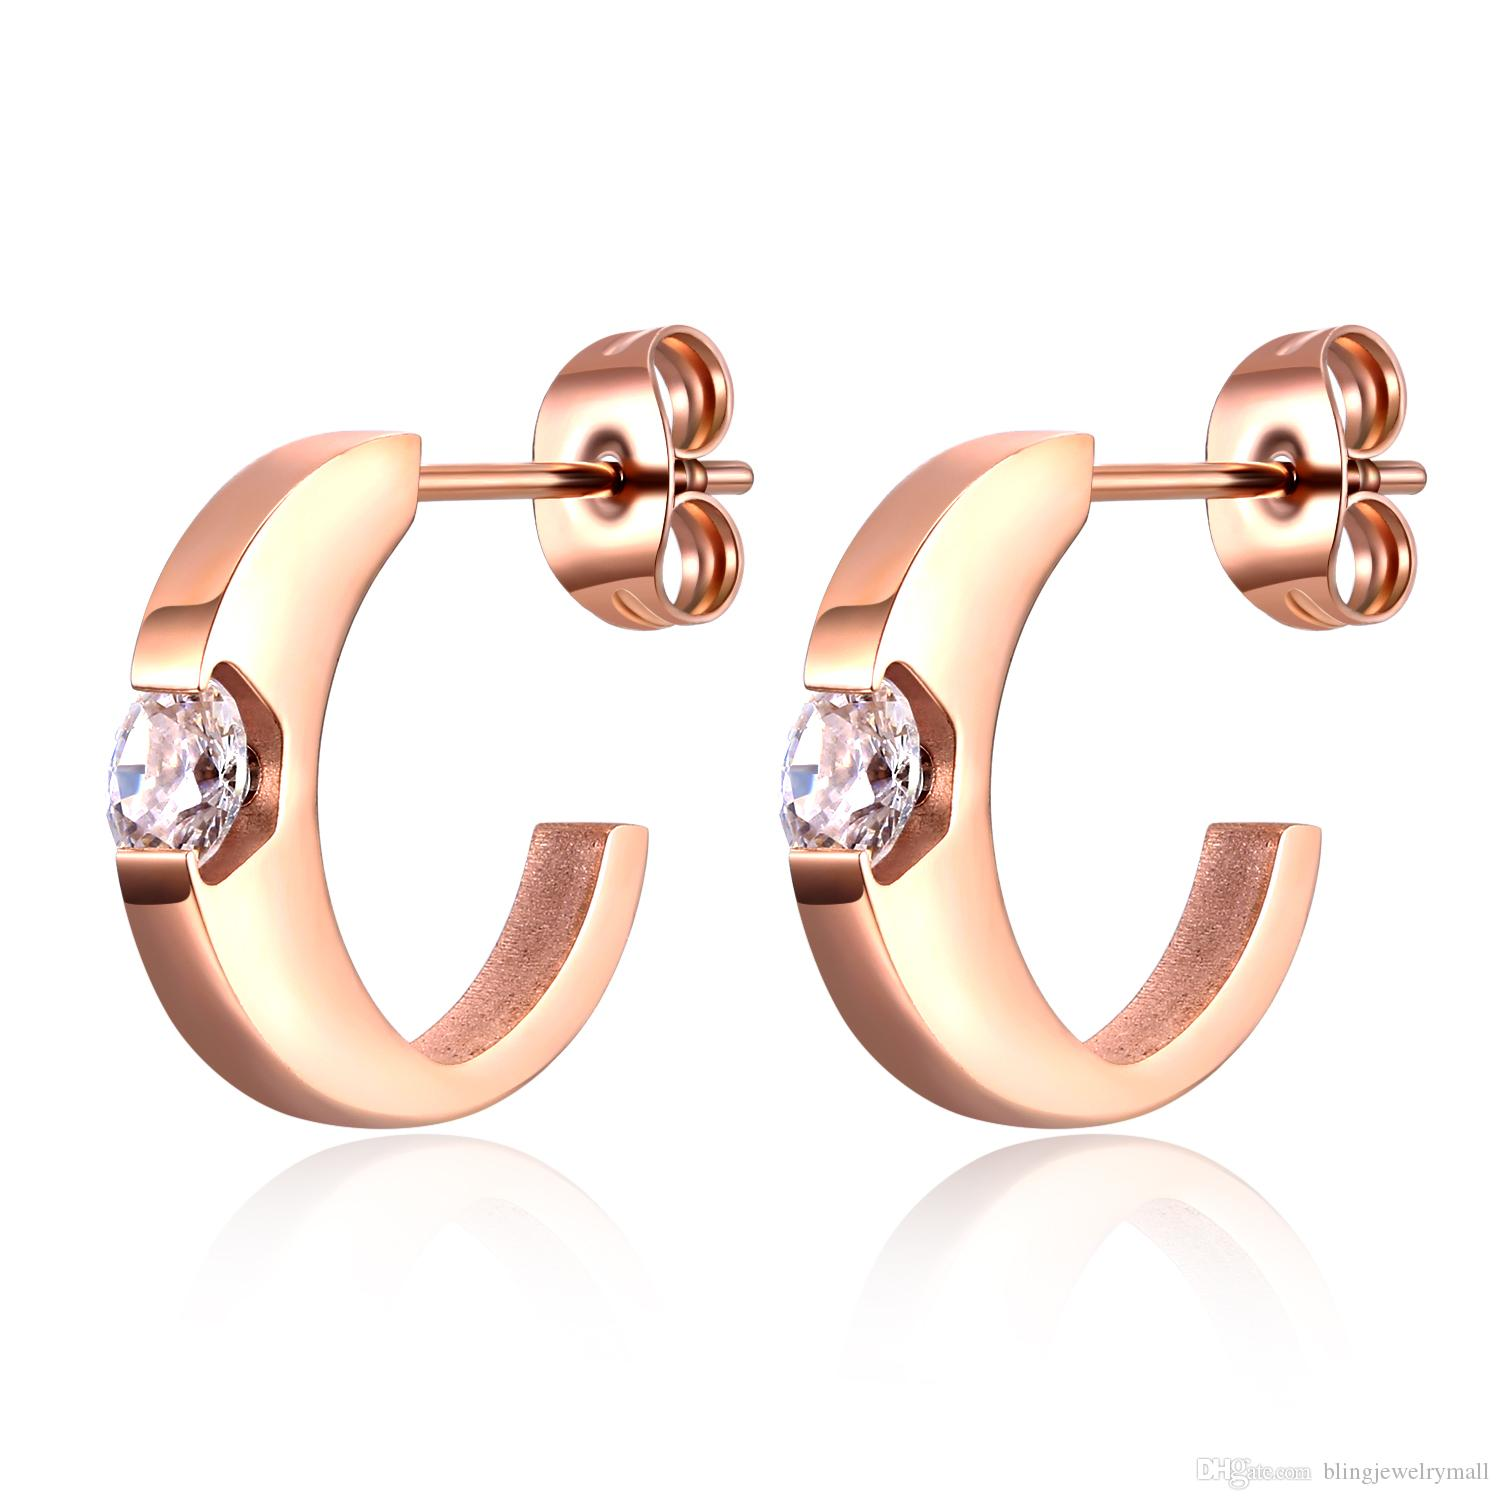 4536631ed Trendy Simple C Design Inlay CZ Stainless Steel Stud Earrings For ...